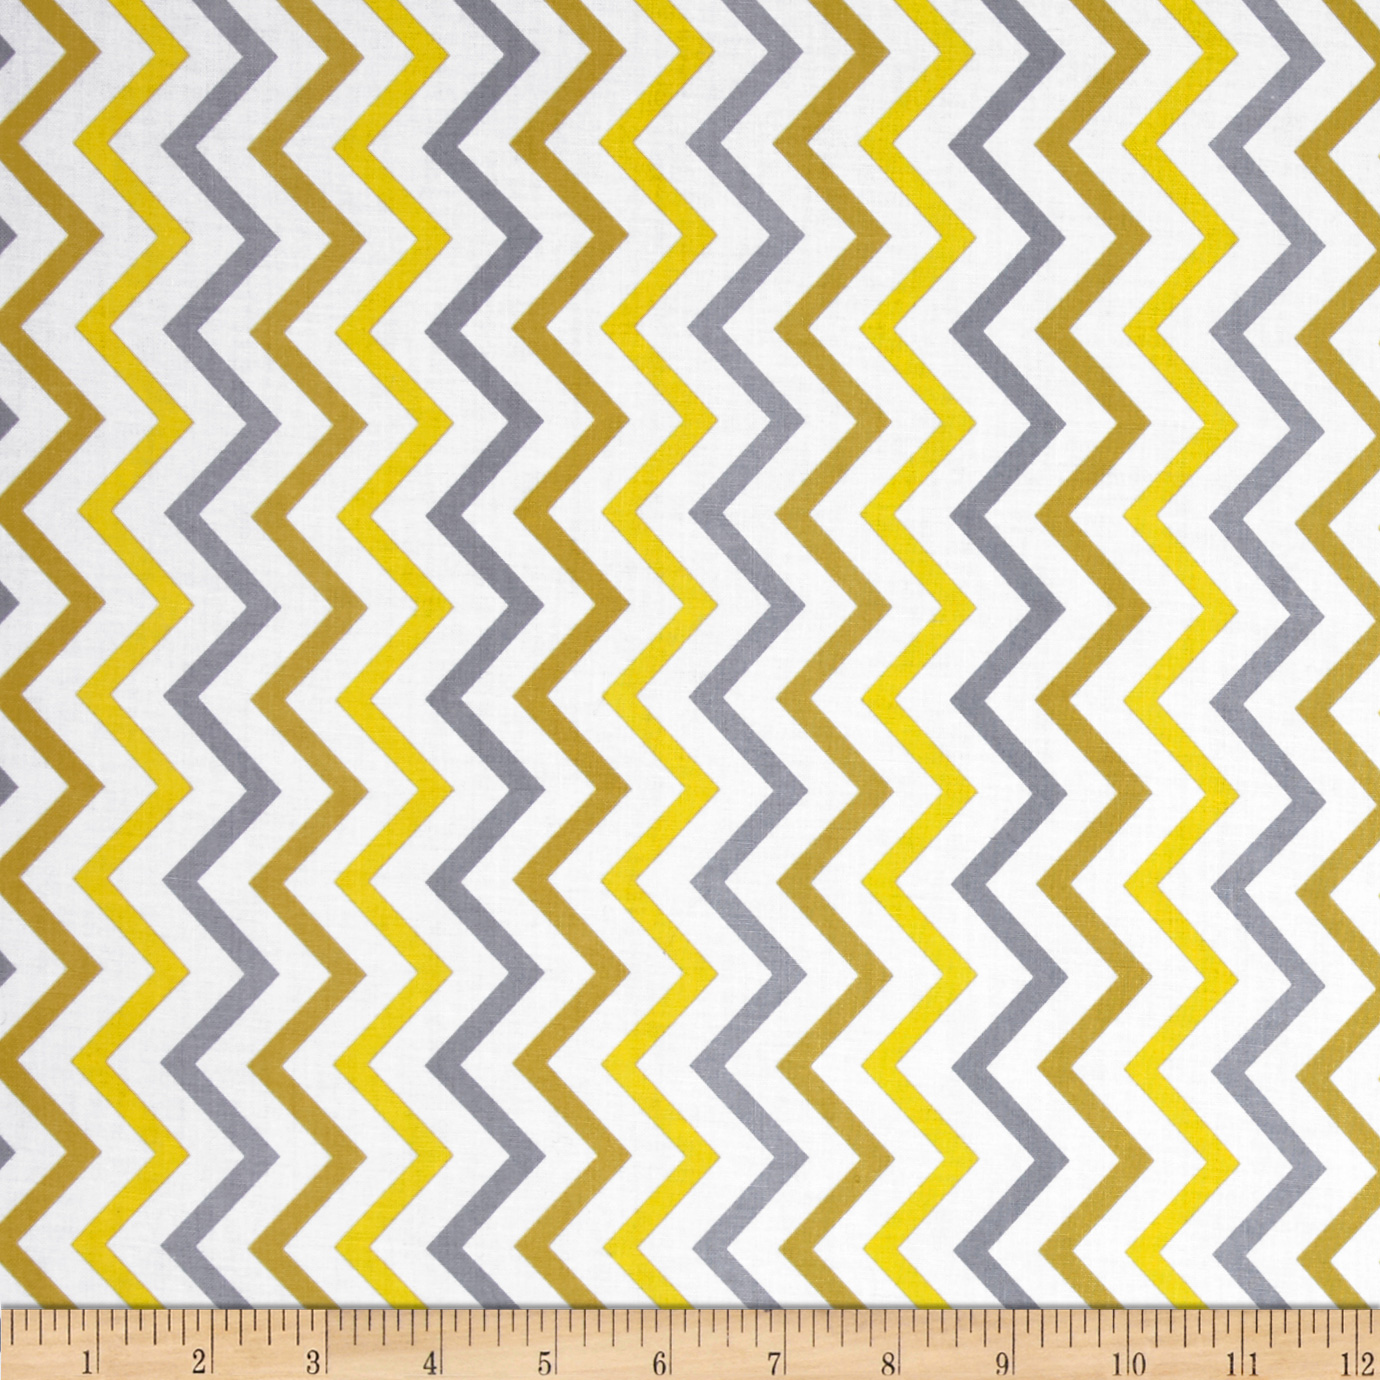 Michael Miller Mini Chic Chevron Citron Fabric